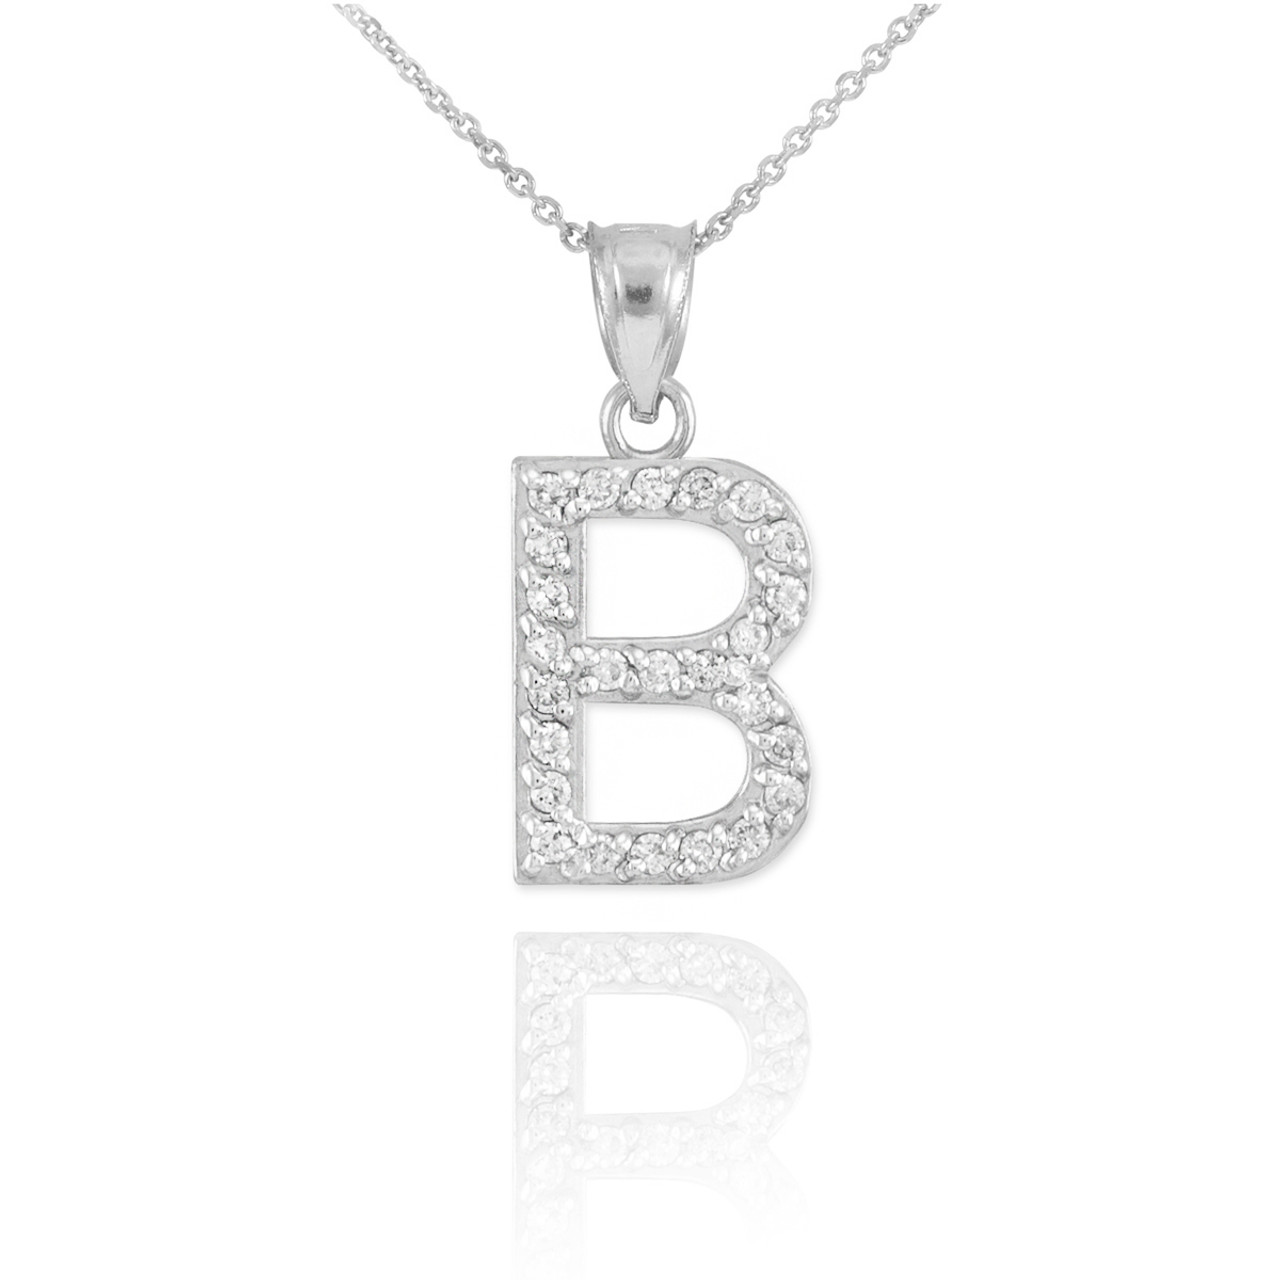 diamond pendant gold necklace n in initial qp letter